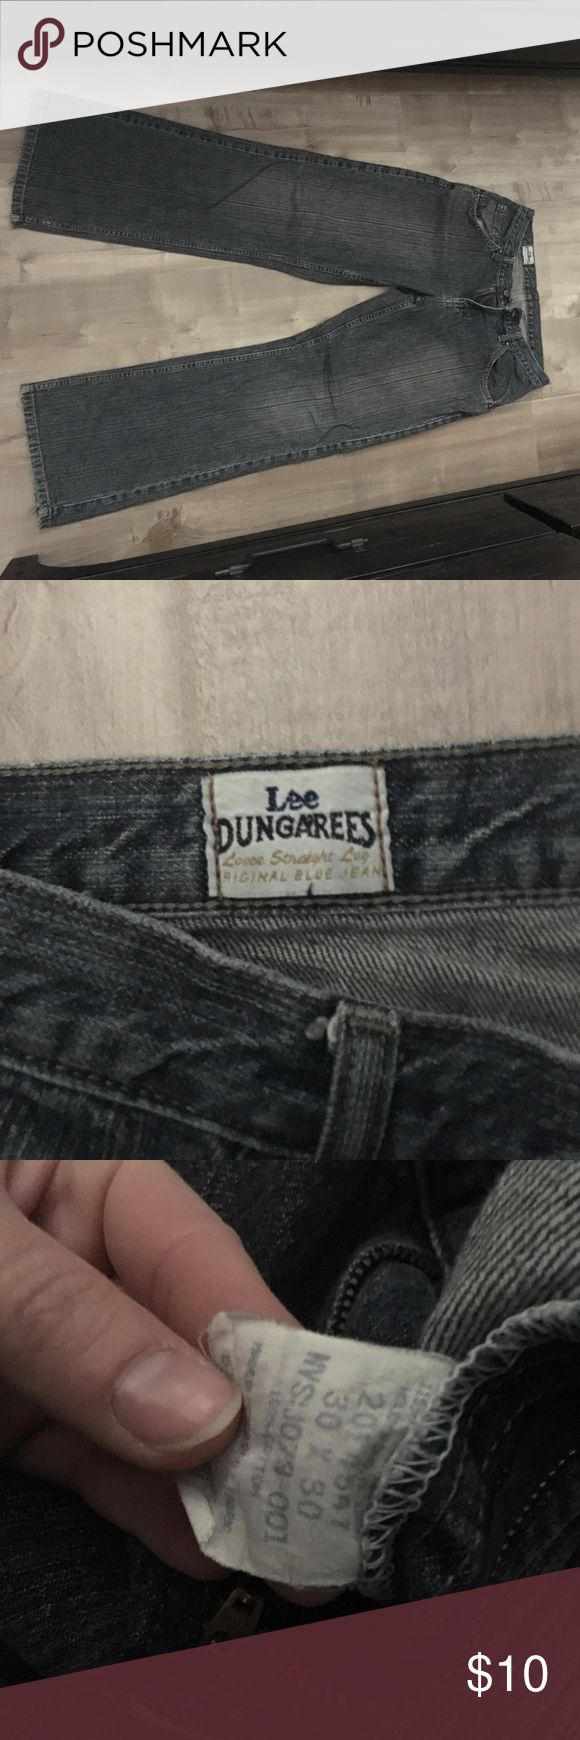 Lee Dungarees jeans Bottom of jeans worn.. see images. Still great jeans with lots of life. Size 30x30 Jeans